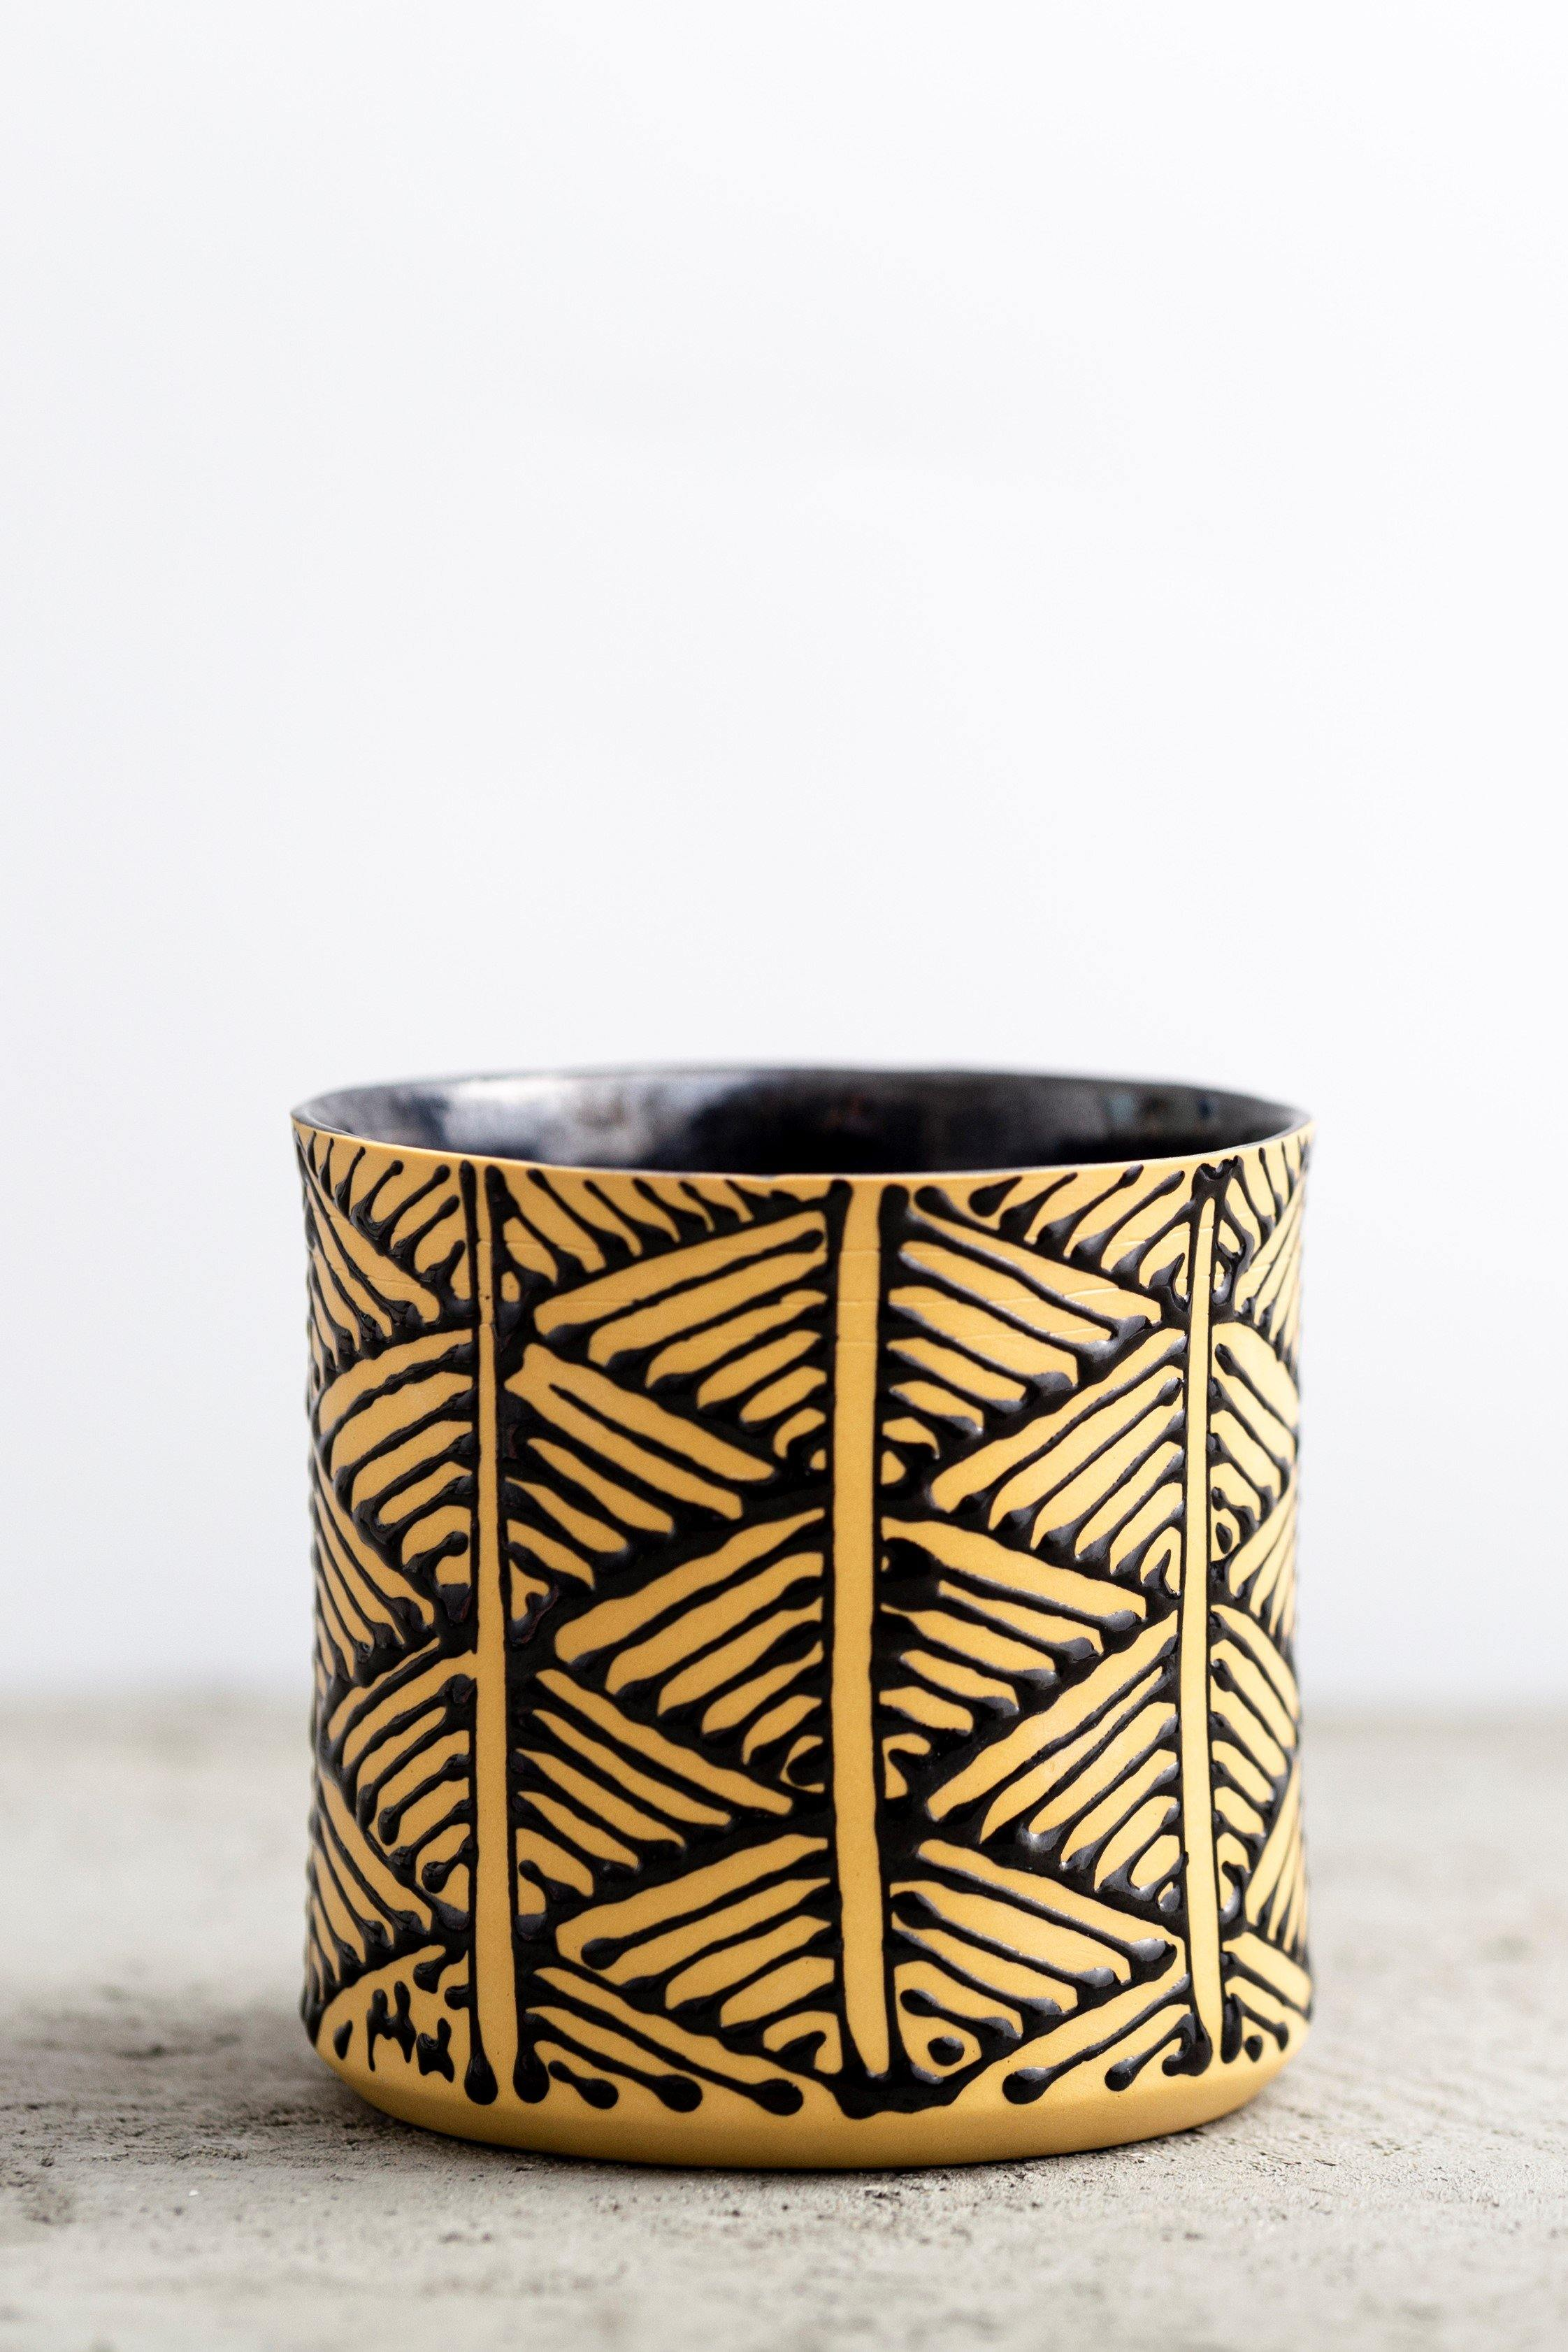 Negev coffee cup | Yellow with black triangles - Maiyan Ben Yona - Ceramic Studio